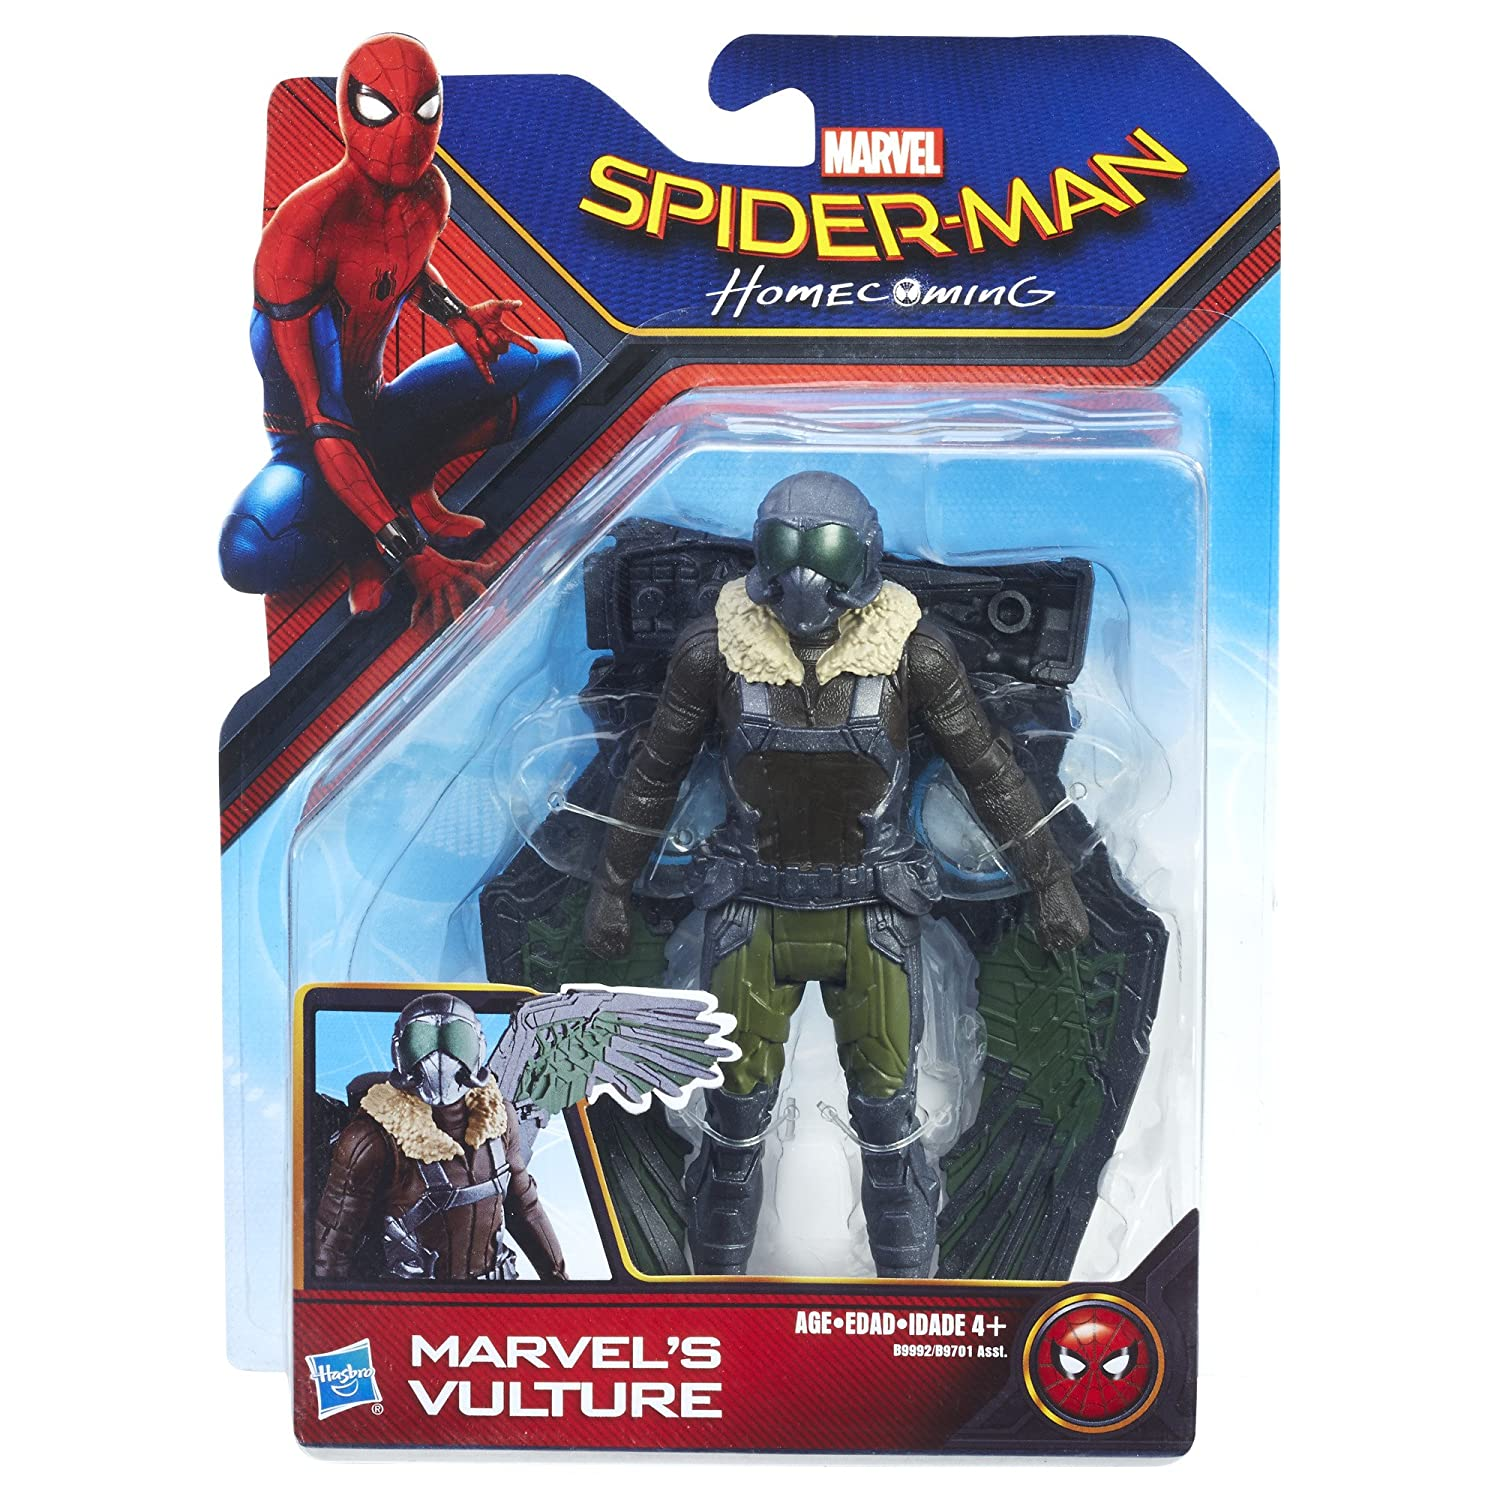 6-inch Hasbro B9701 Marvel Spider-Man Homecoming Vulture Figure